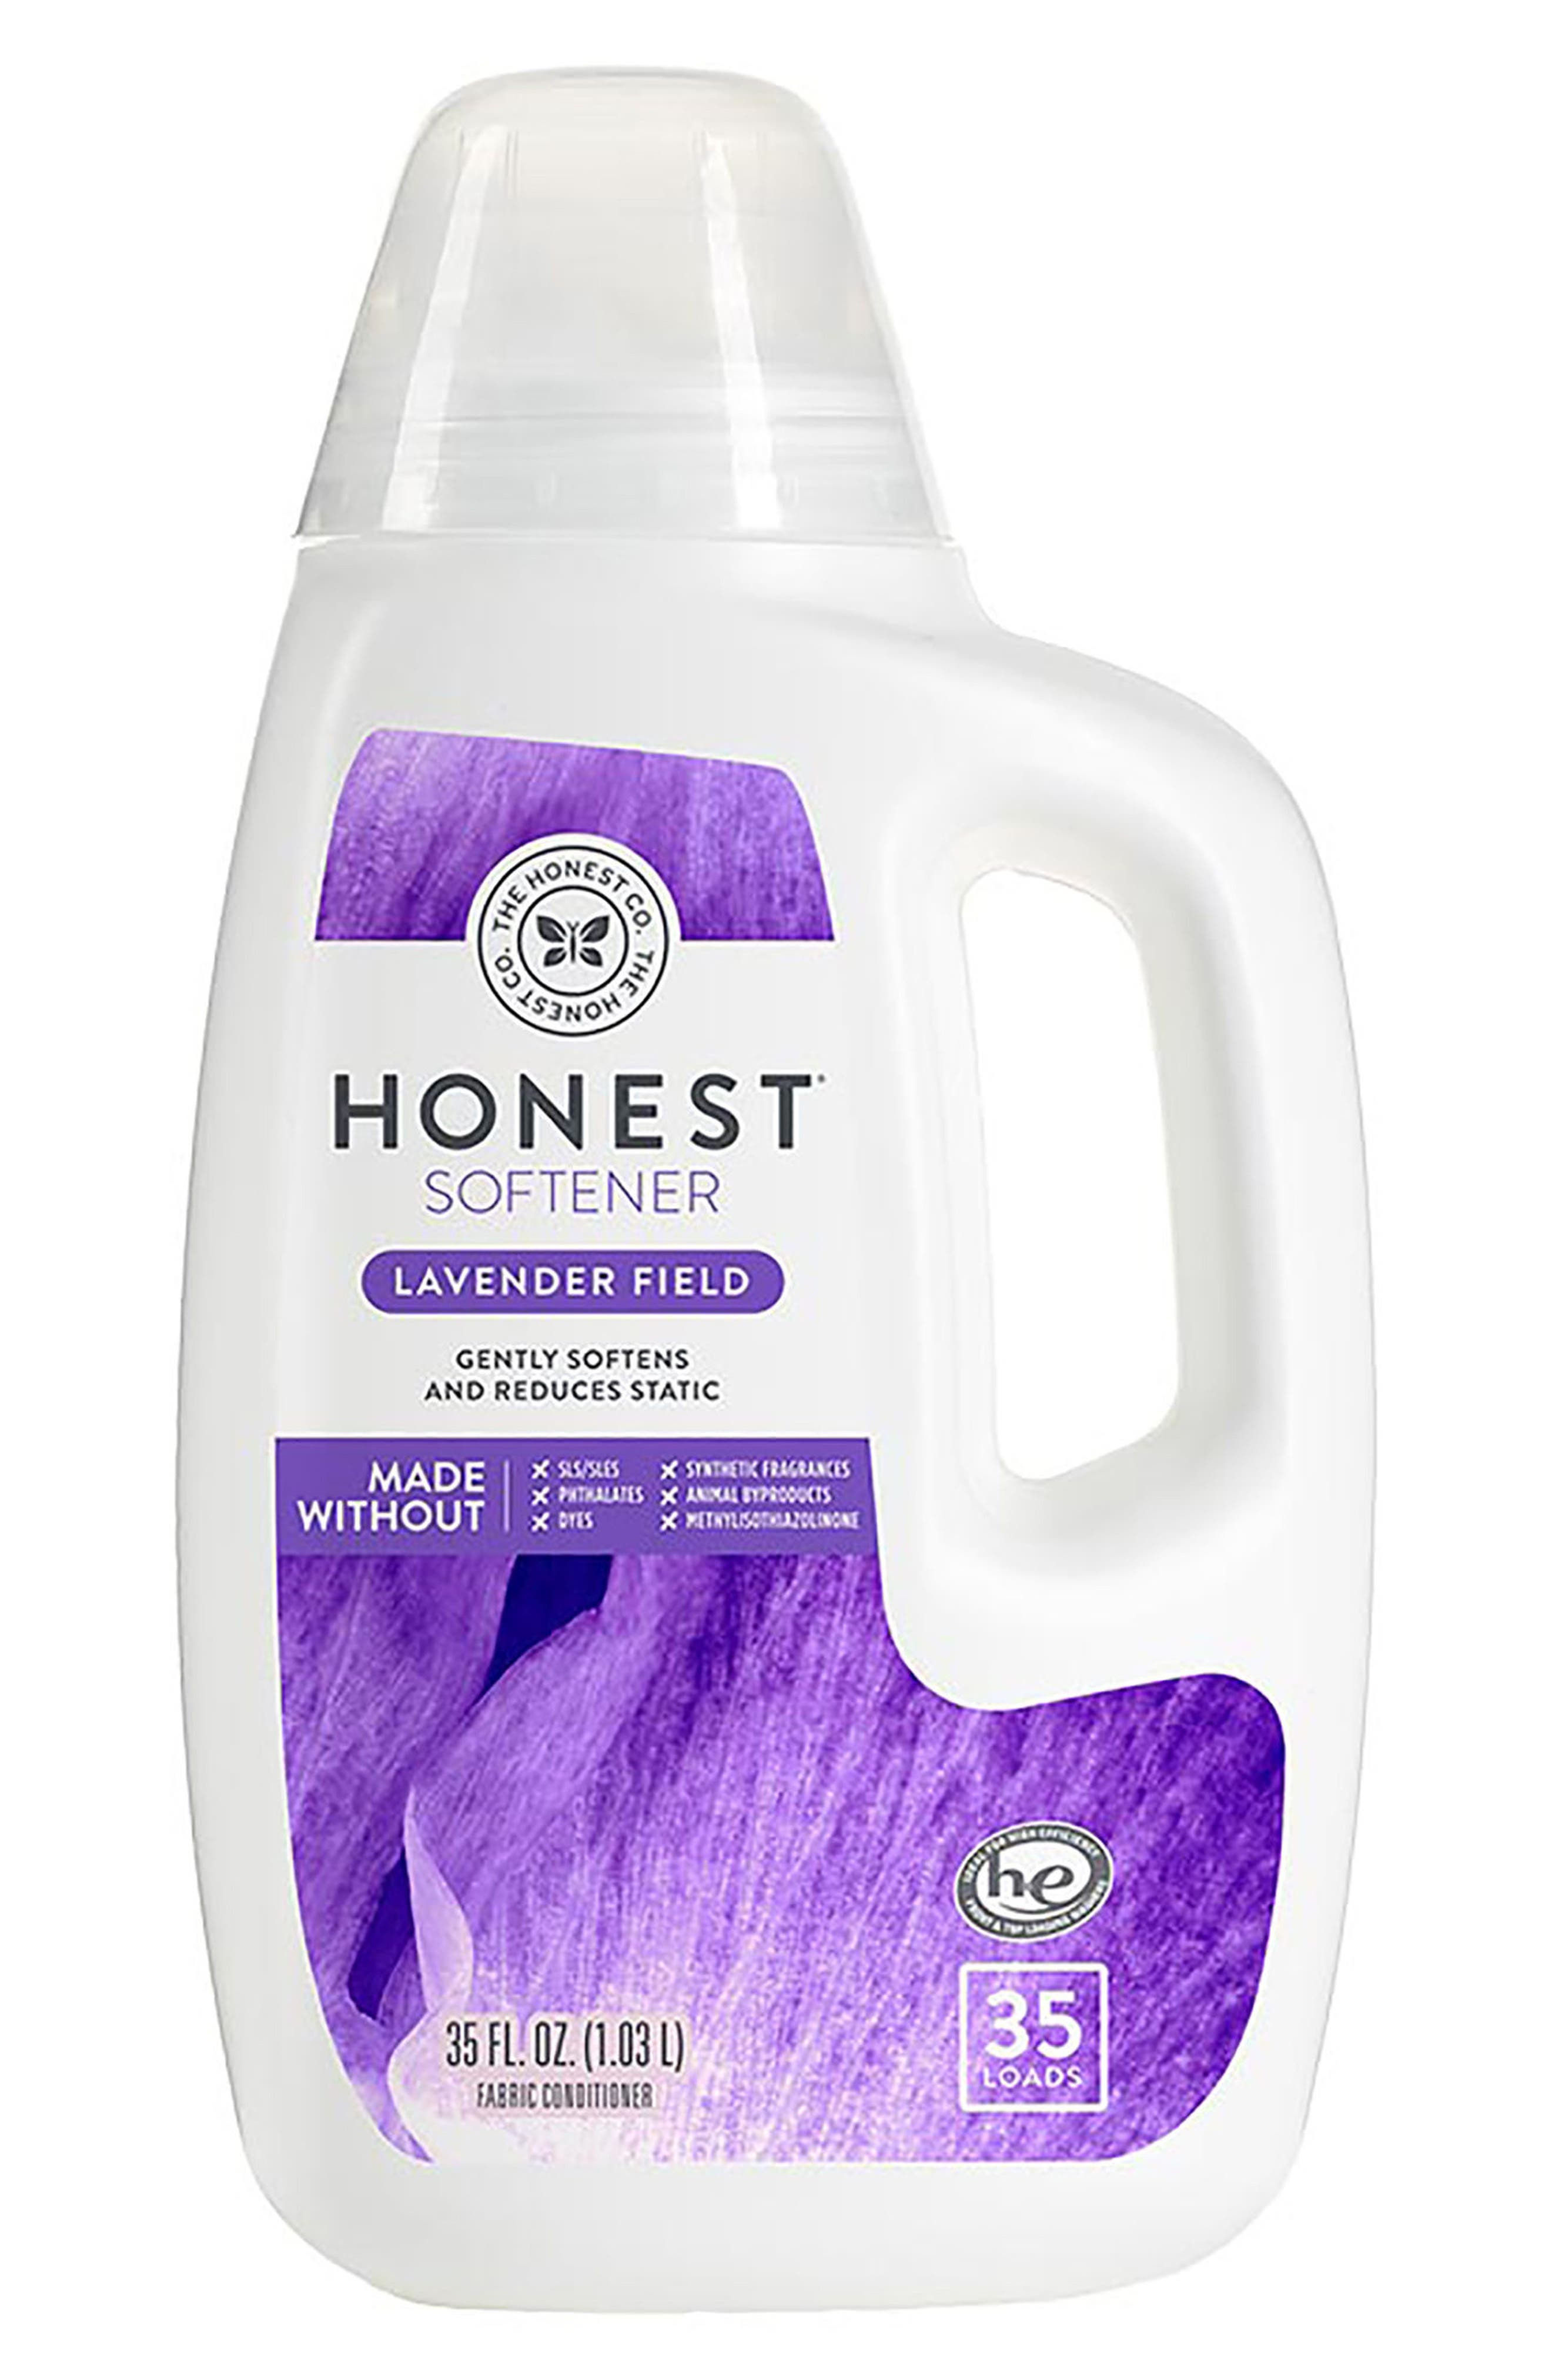 The Honest Company Lavender Field Fabric Softener